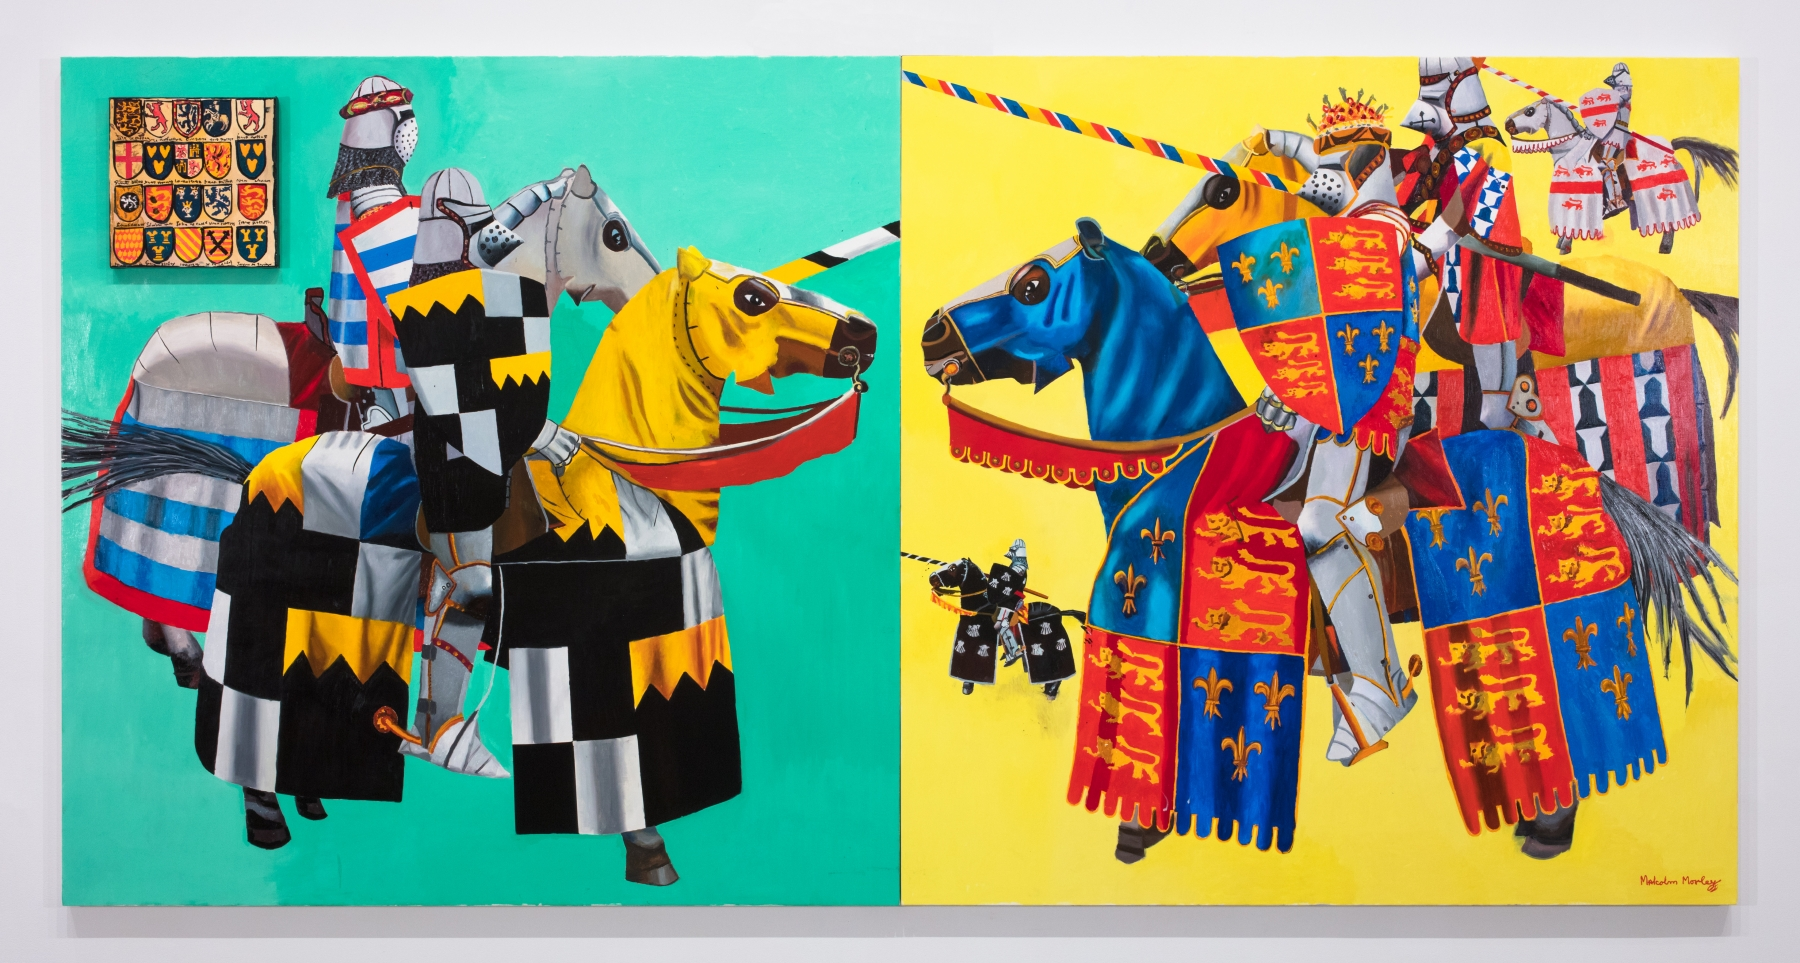 diptych of knights on horseback against teal and yellow backgrounds